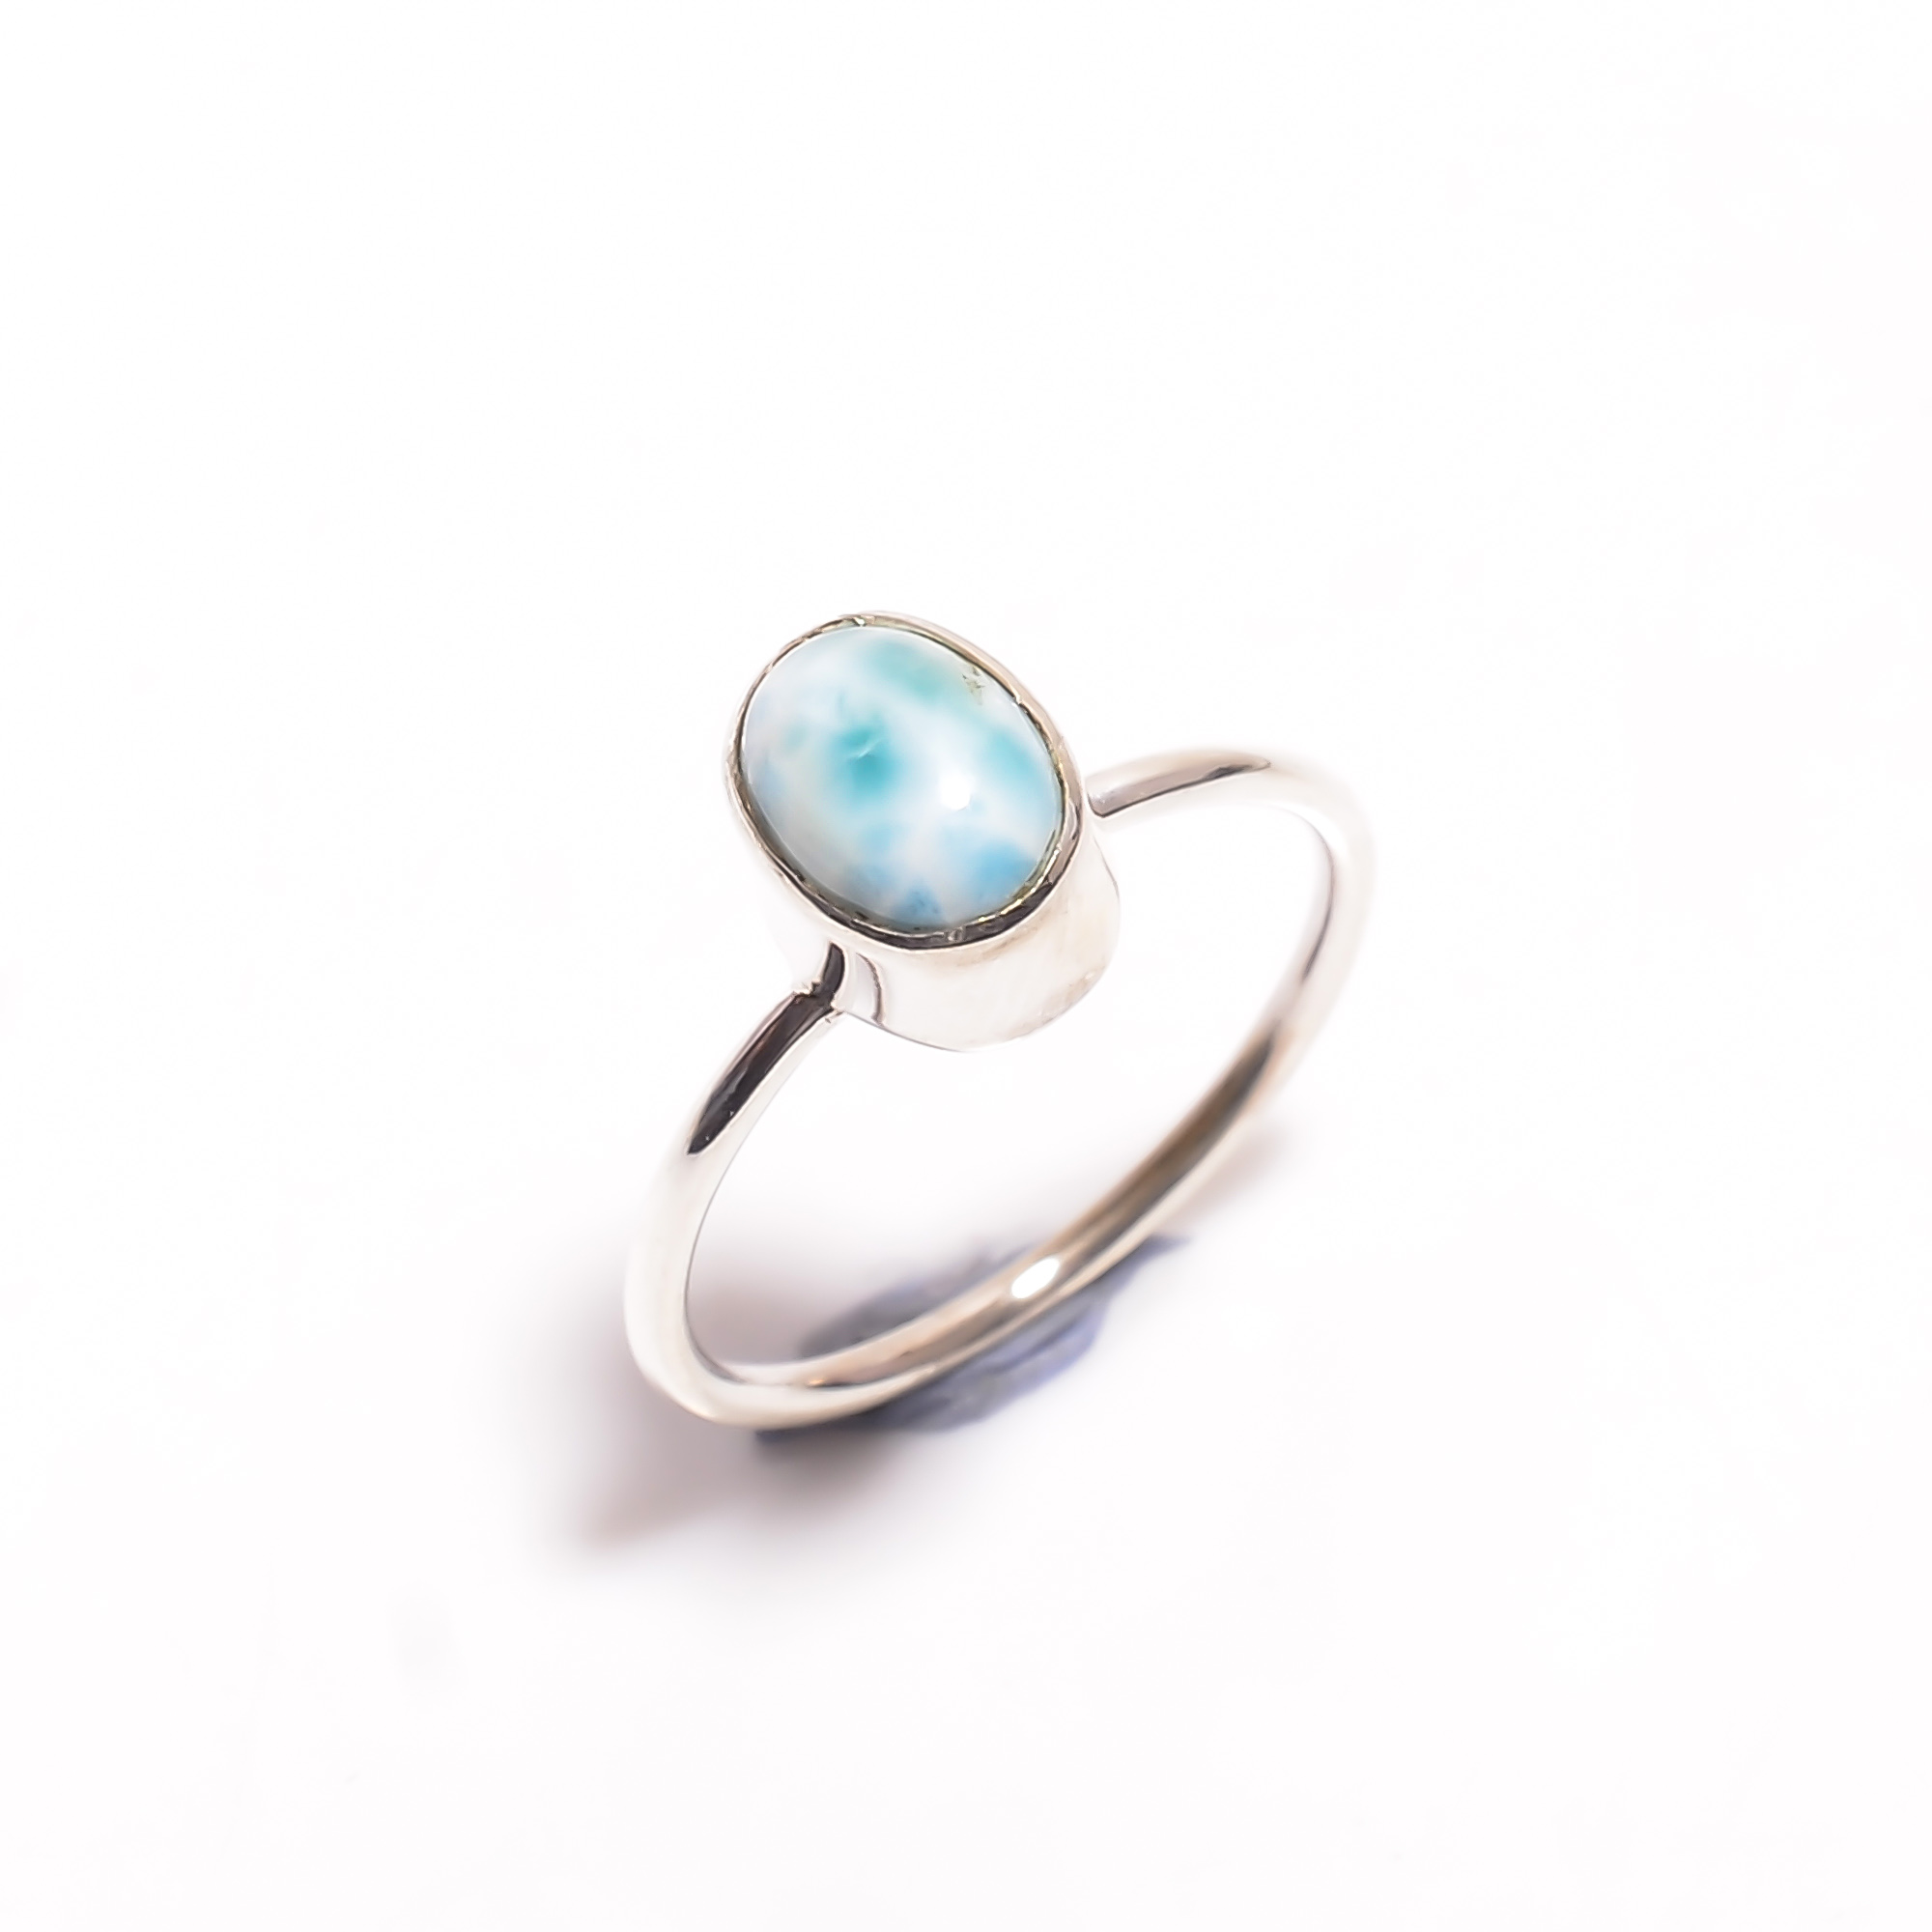 Natural Larimar Gemstone 925 Sterling Silver Ring Size US 6.75